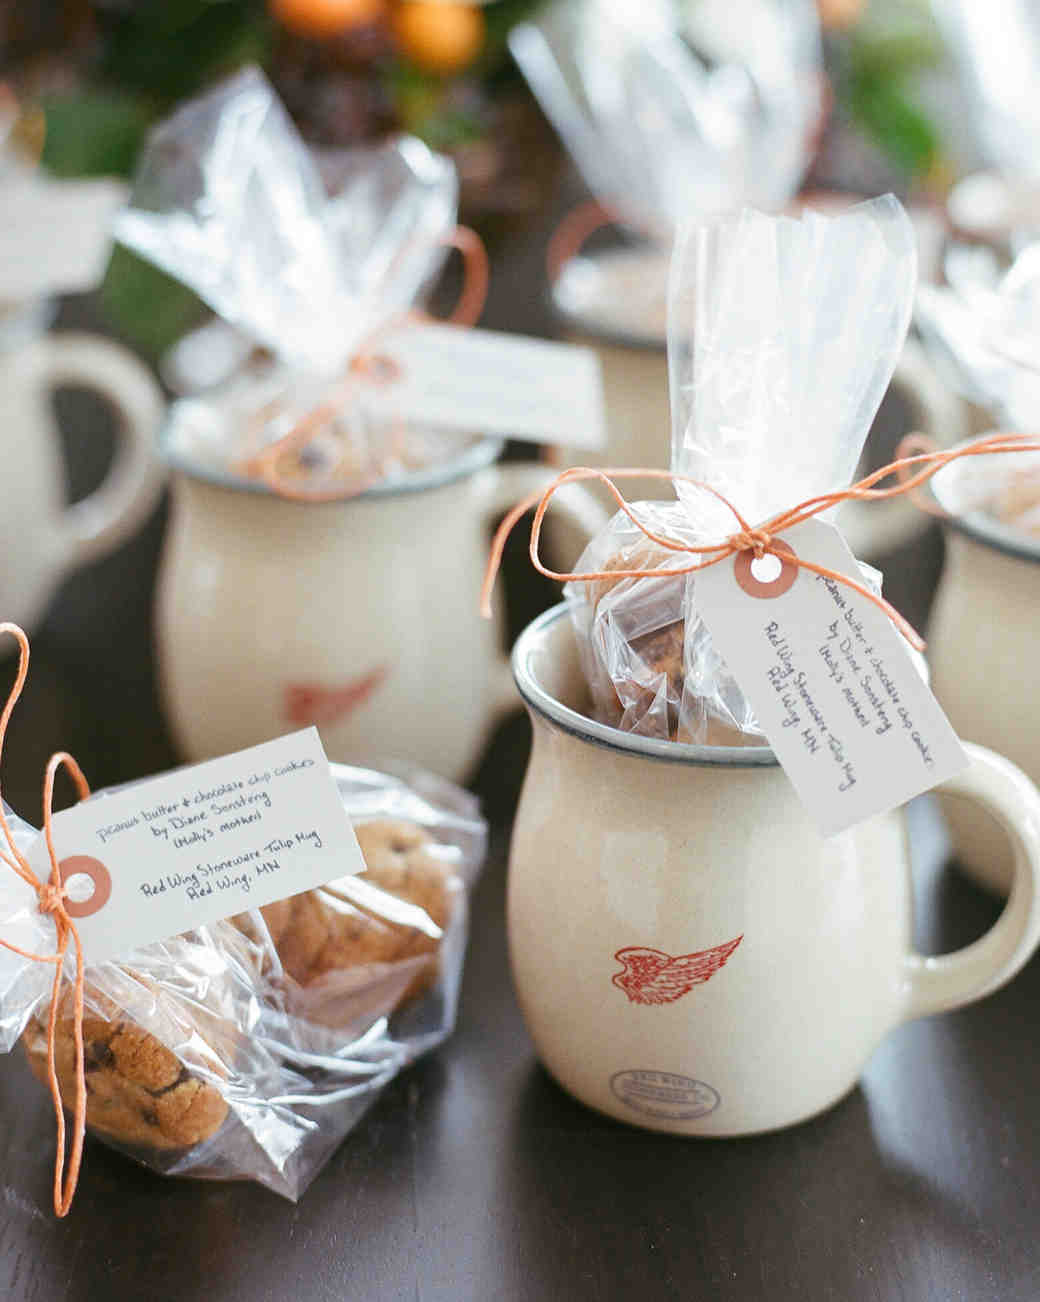 32 unique ideas for winter wedding favors martha stewart weddings solutioingenieria Gallery